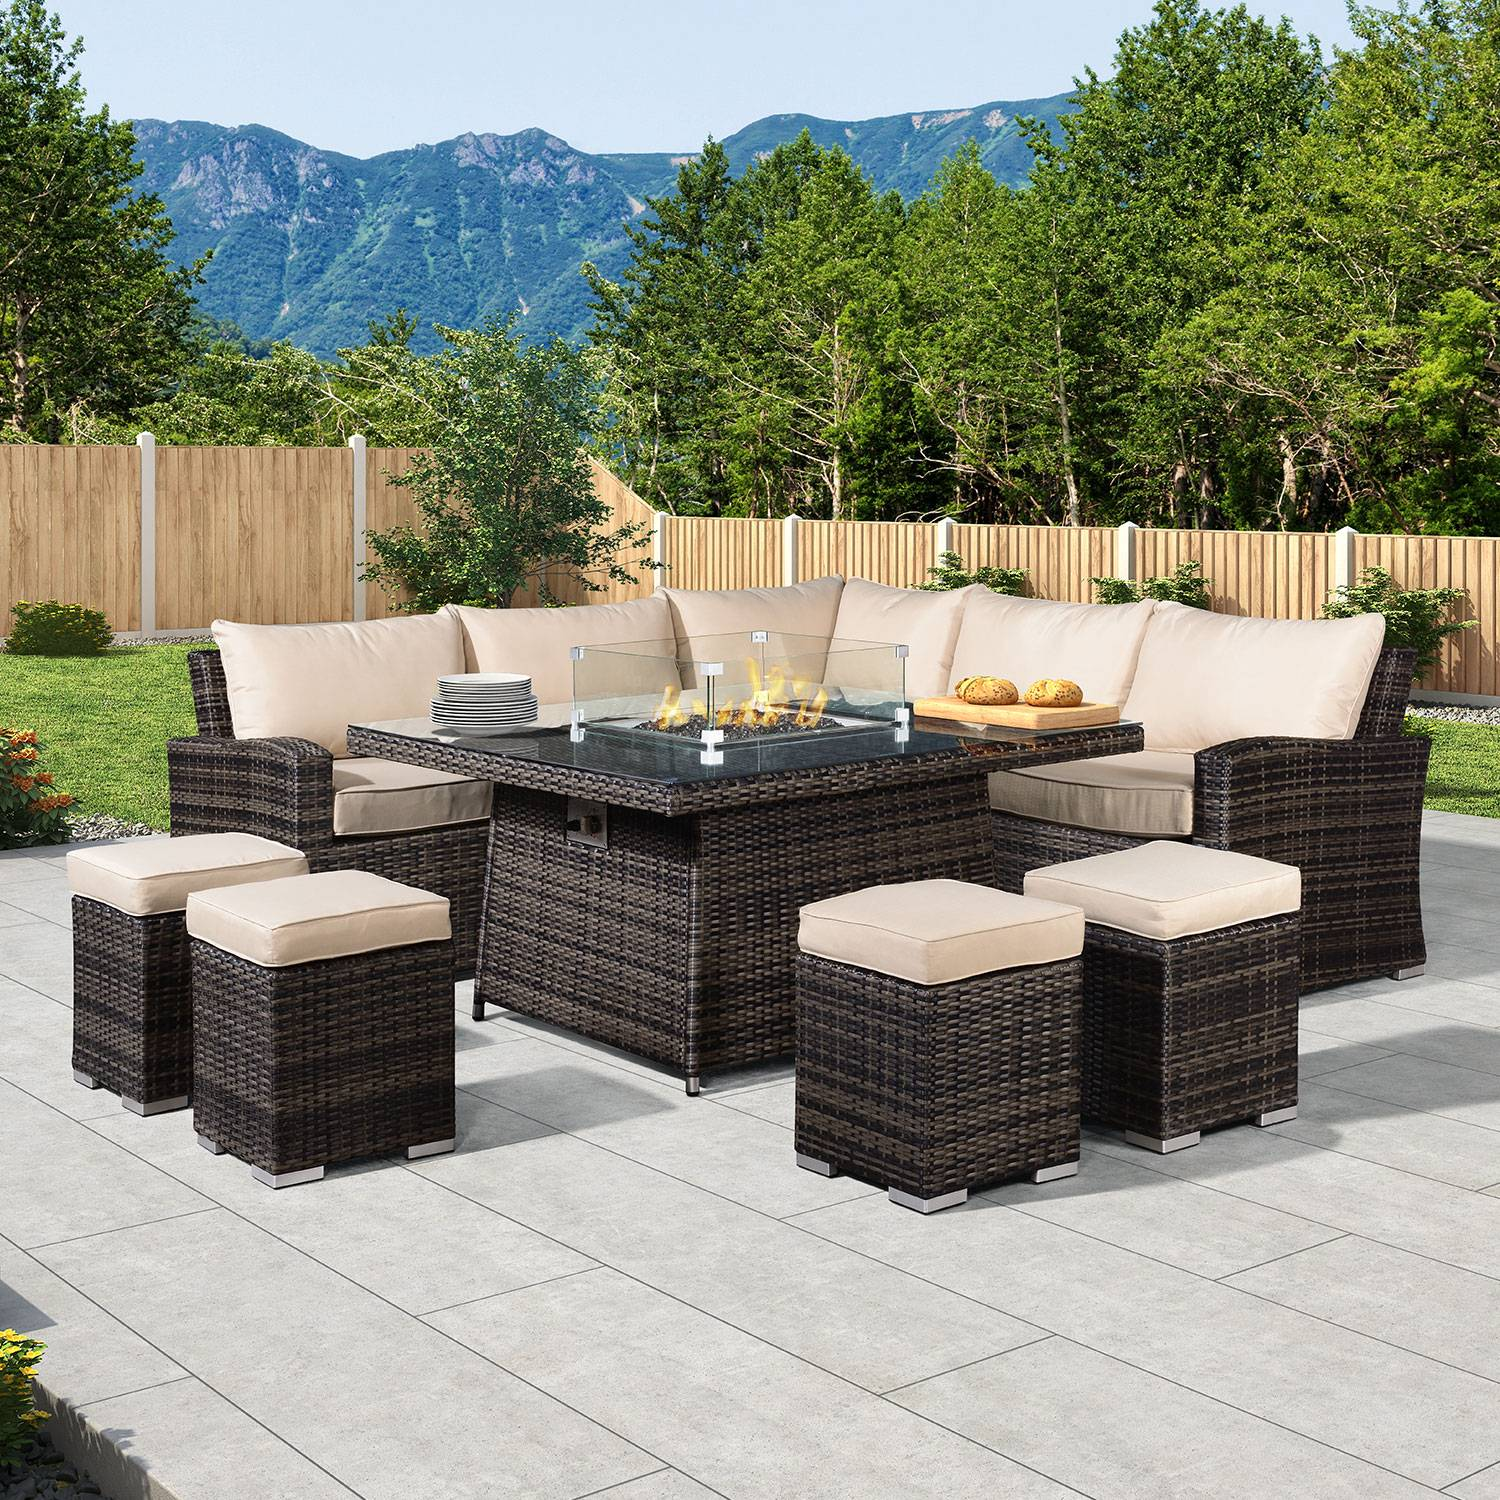 Oakworld Alfresco Cambridge Deluxe Corner Dining Set with Fire Pit Table - Brown